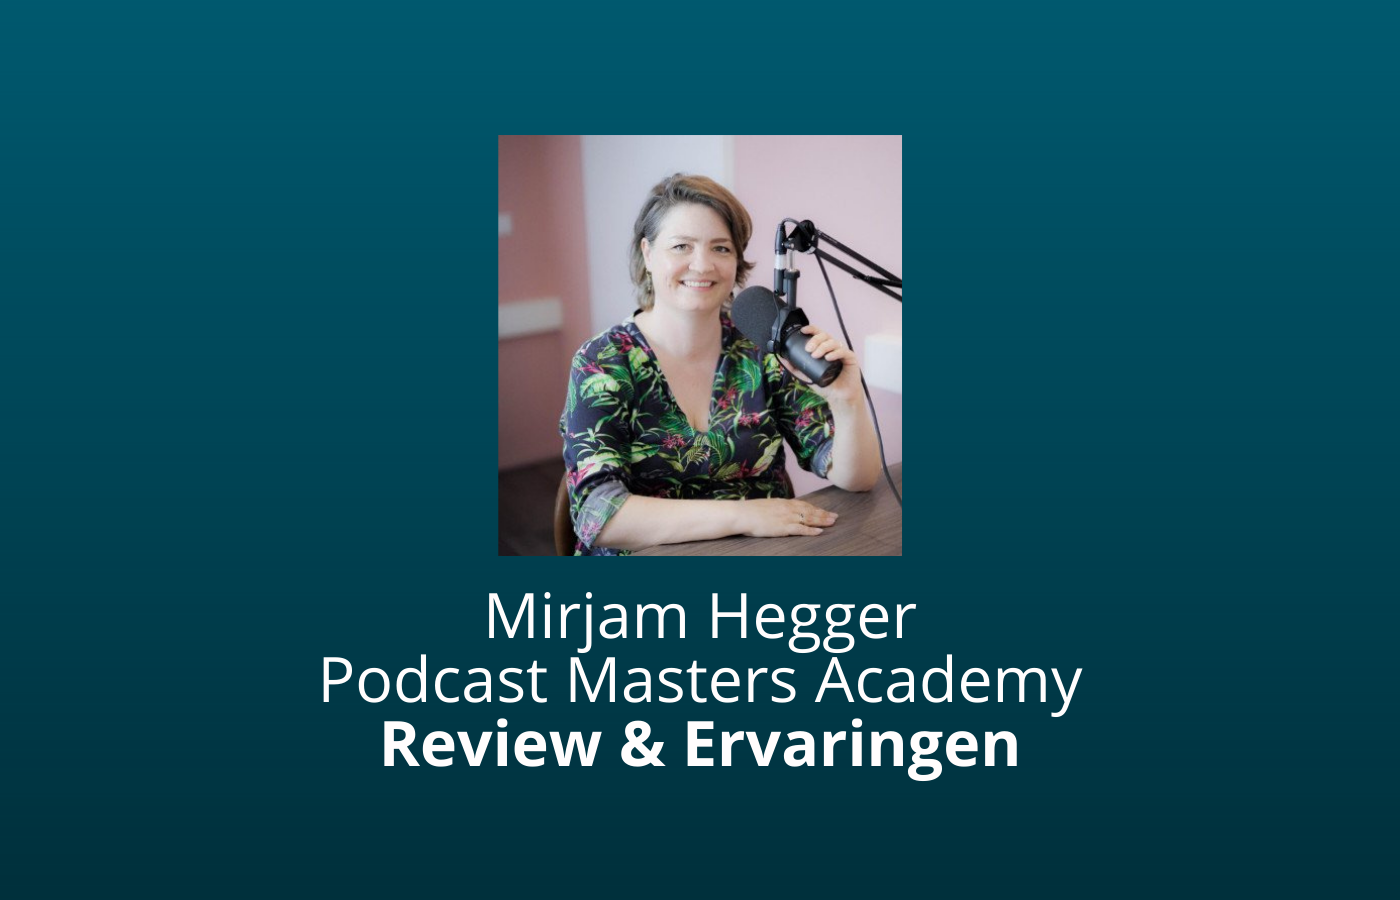 podcast masters academy review mirjam hegger